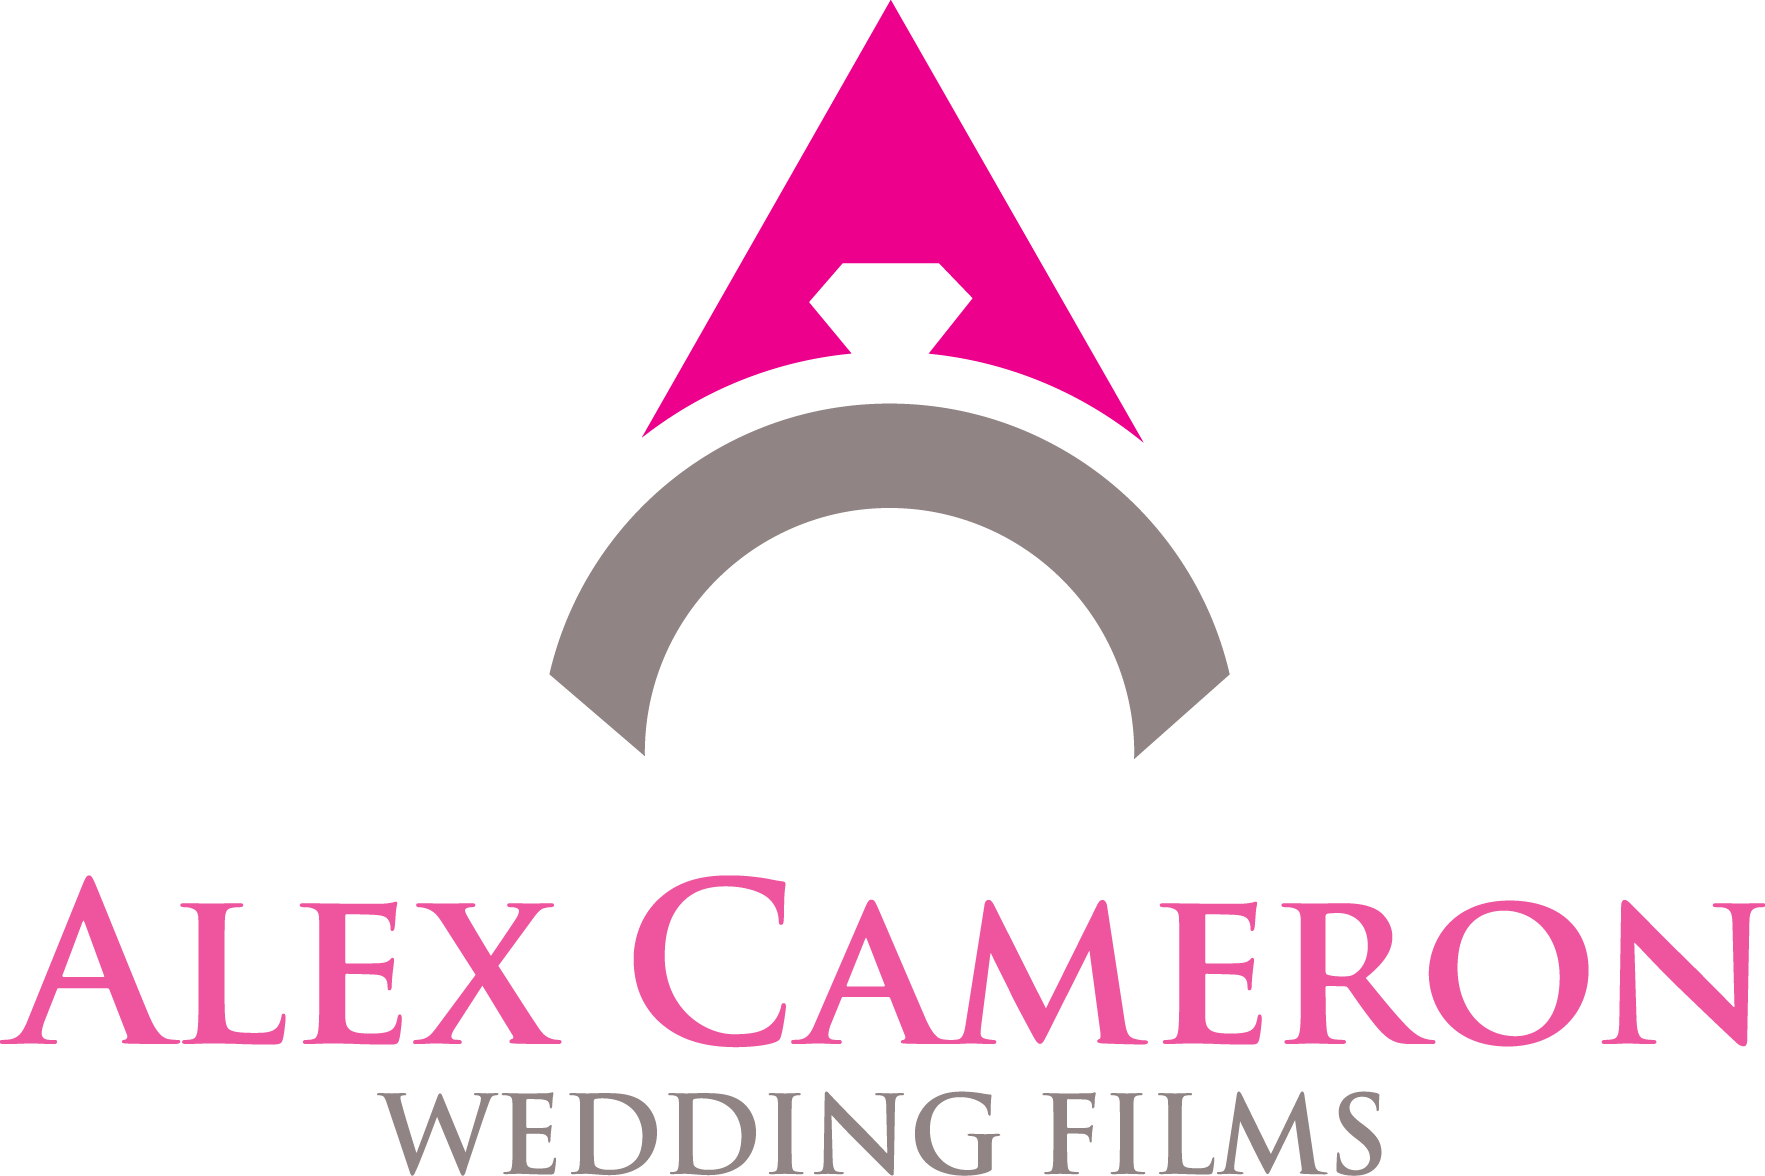 Alex Cameron Wedding Films